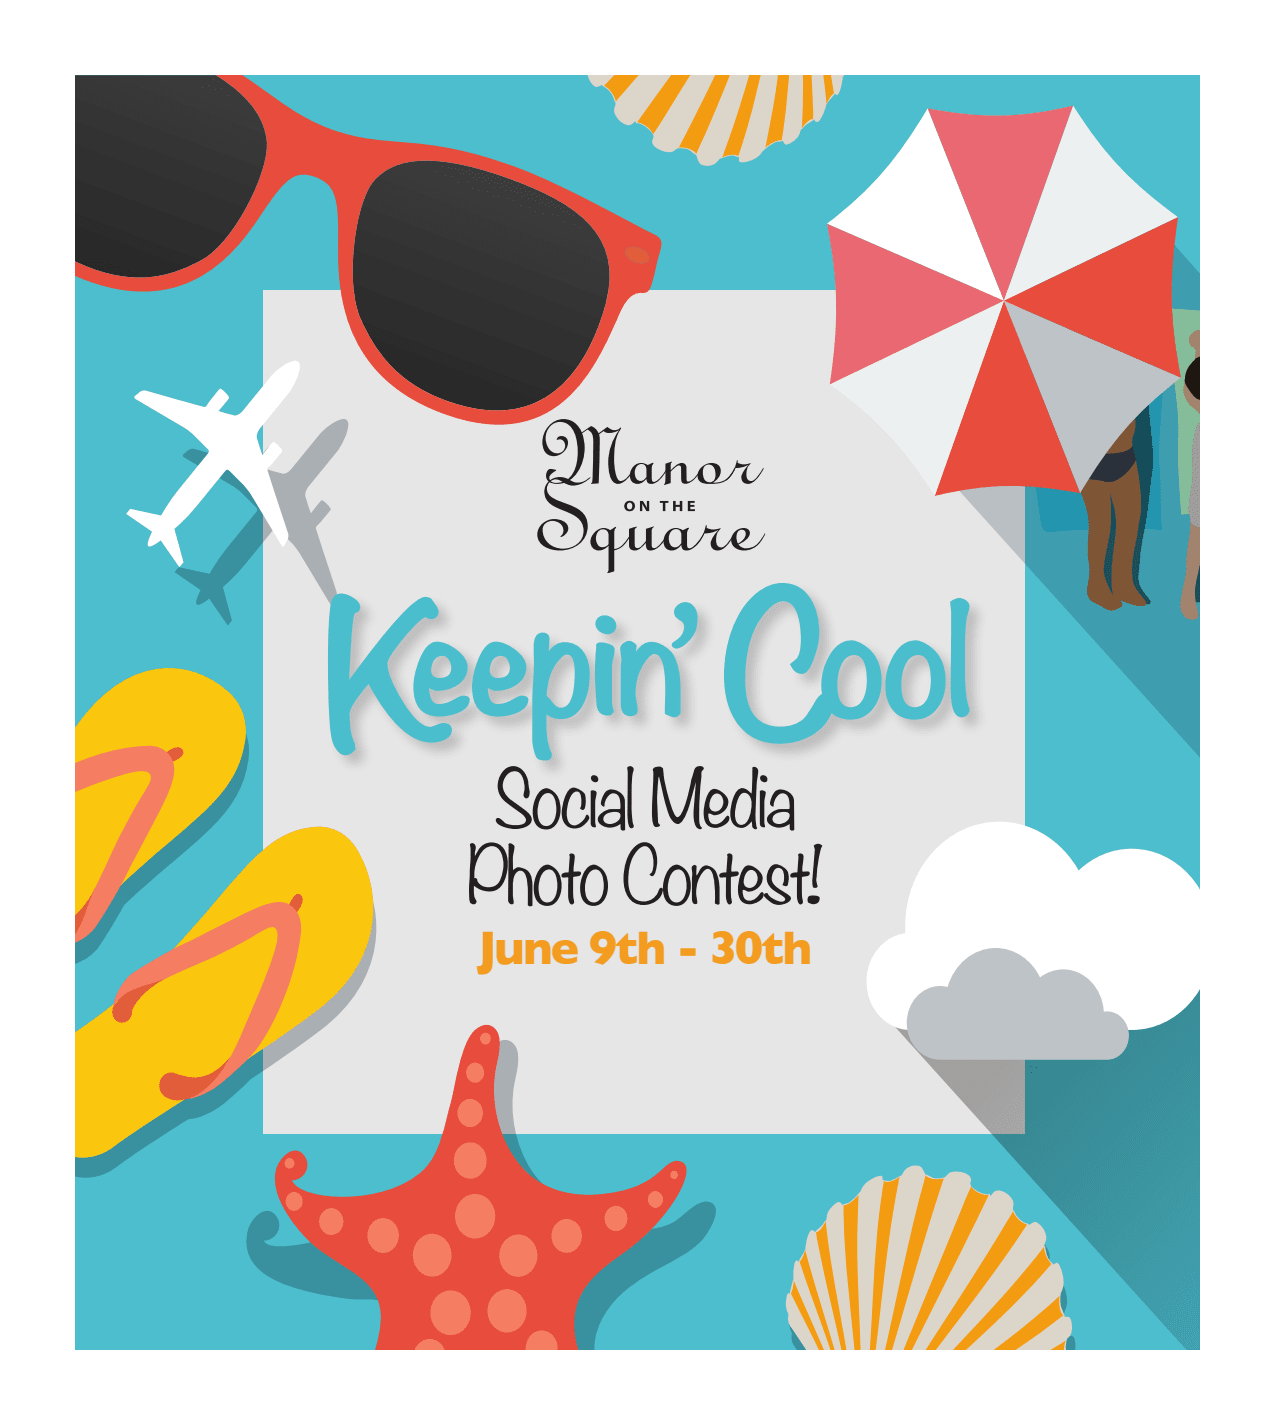 Keep Cool Photo Contest - activities at Benton Village of Stockbridge in Stockbridge, GA